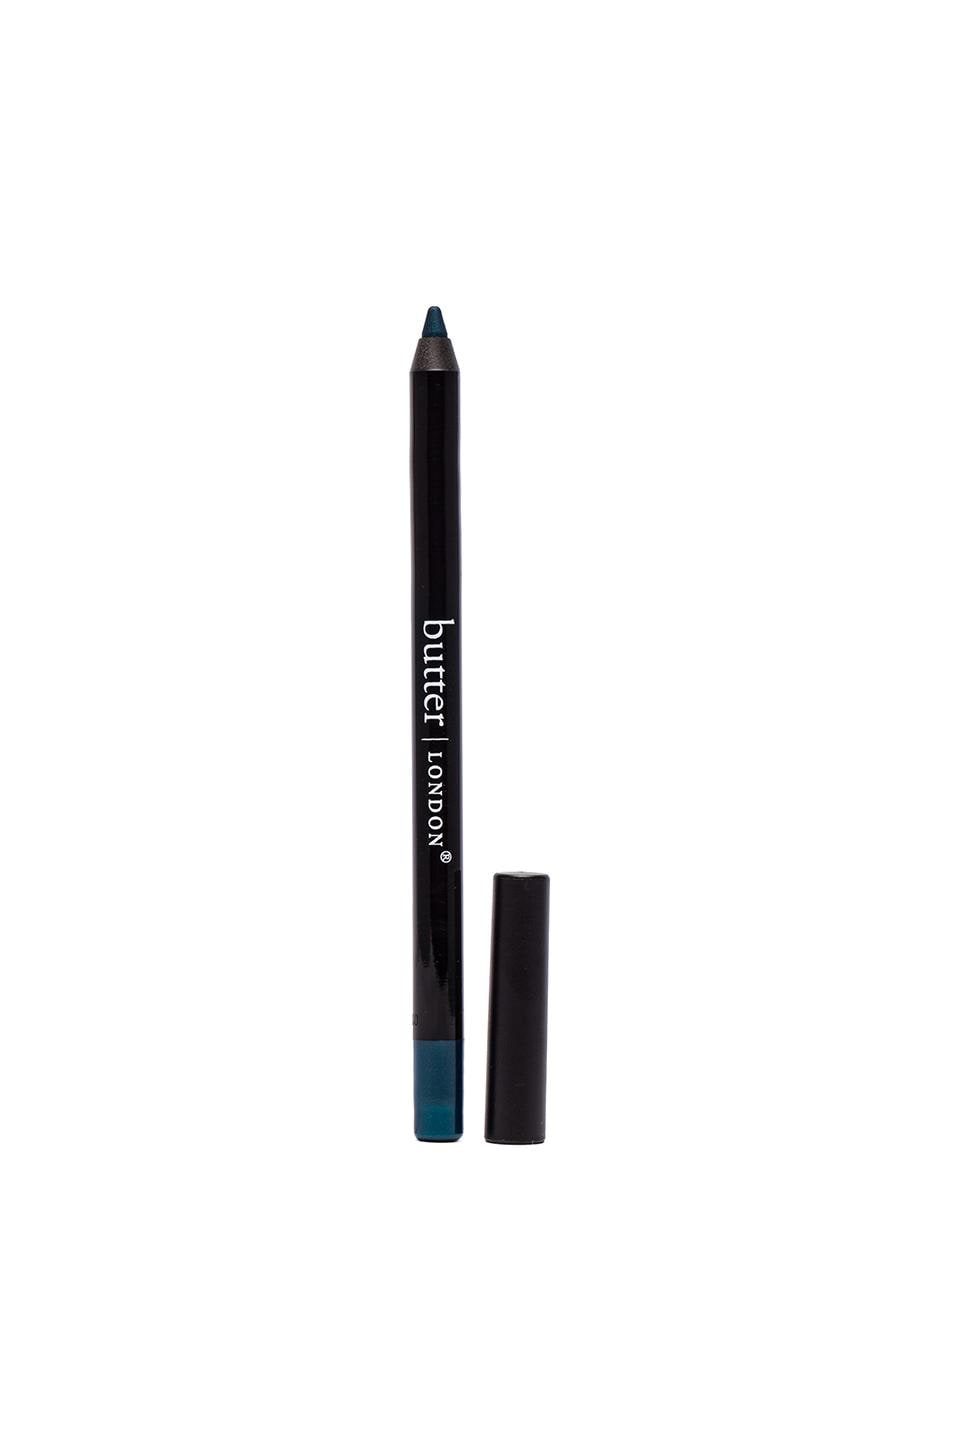 butter LONDON Wink Eye Pencil in Holland Park